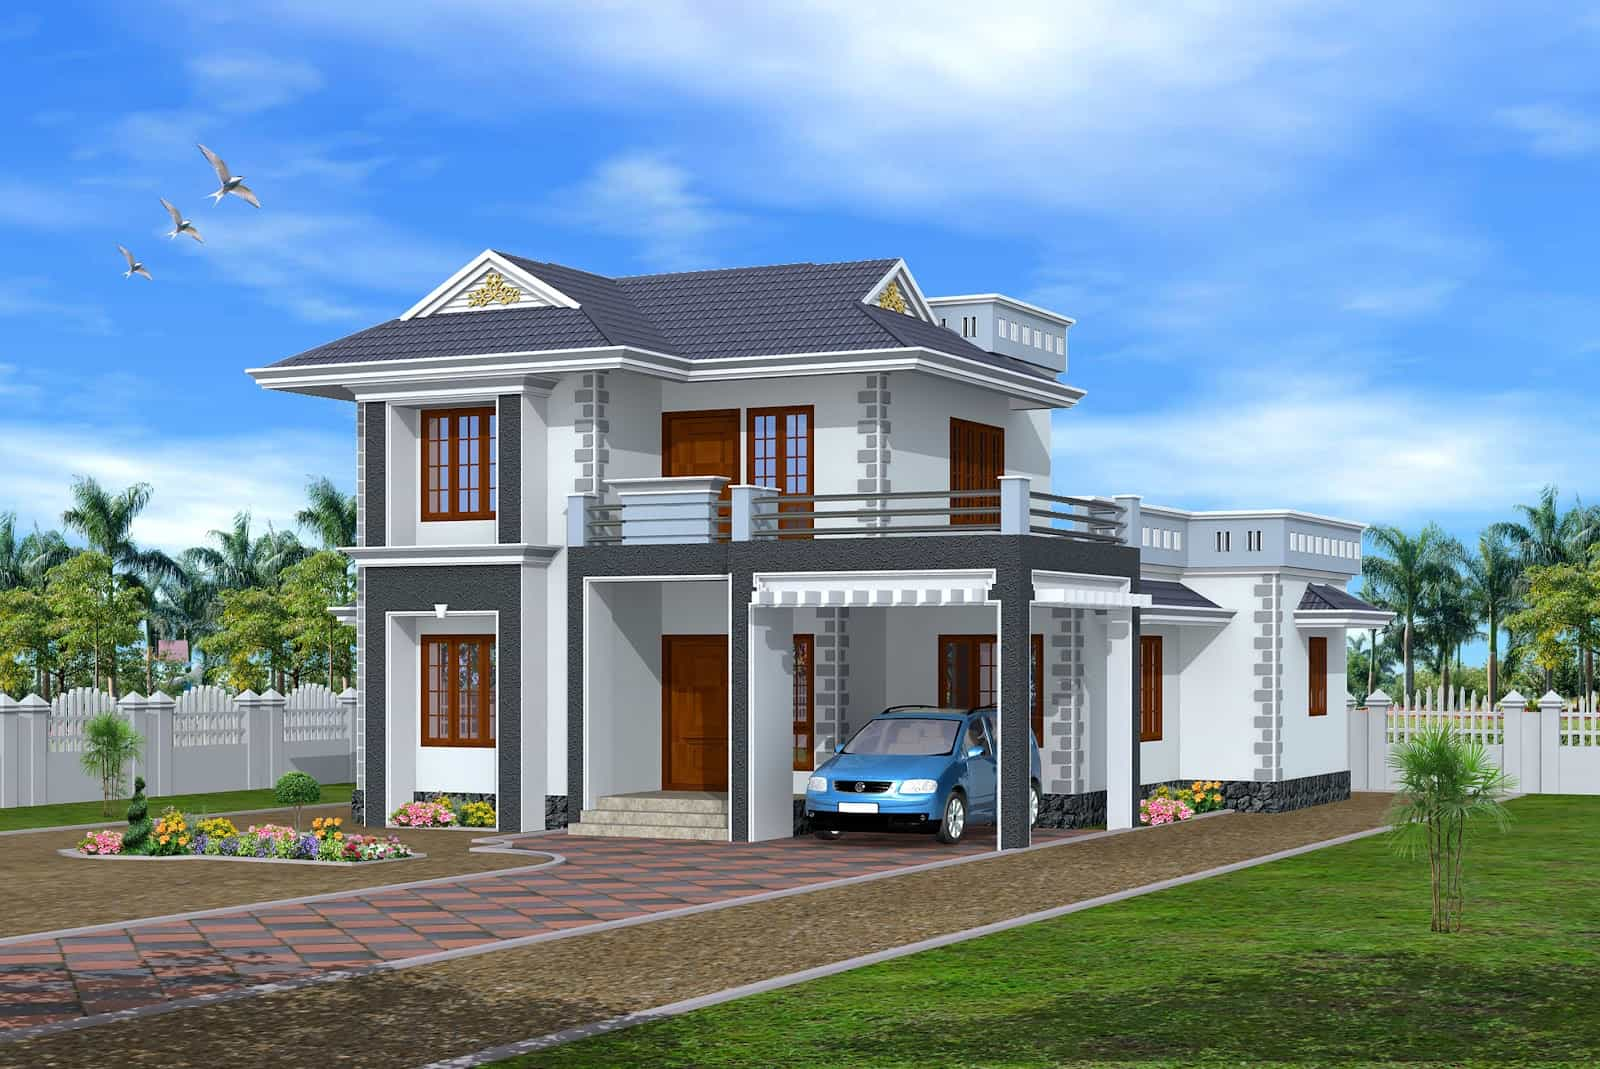 Incroyable Home Design Picture Indian 1874 Sqft Modern Contemporary 4 Bhk Villa Home  Architecture Design 3 Bedroom